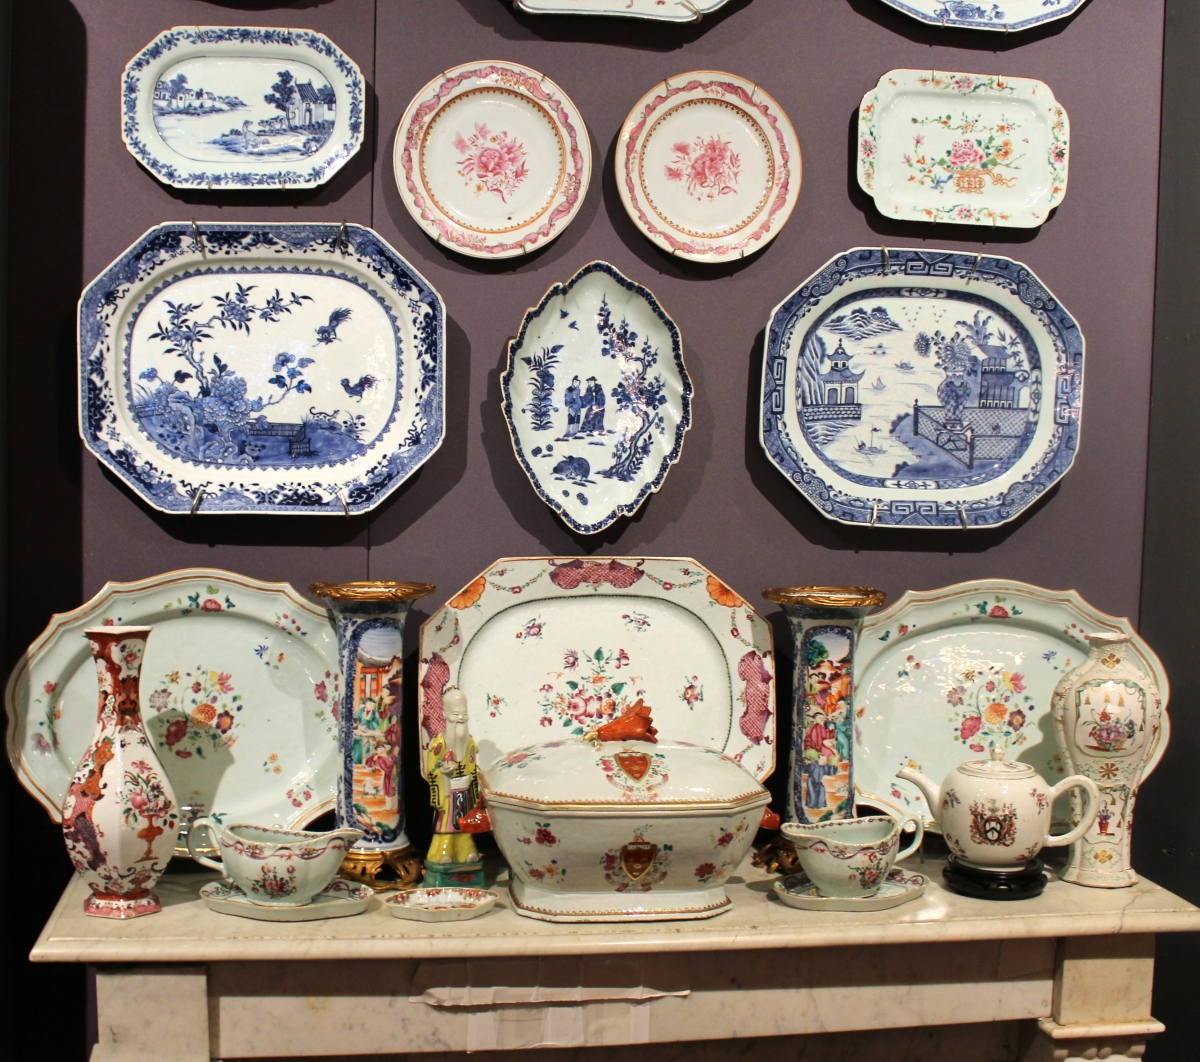 Collection of Chinese export porcelain, including underglaze blue and white, famille rose and armorial examples, shown by Lynda Willauer Antiques, Nantucket, Mass.